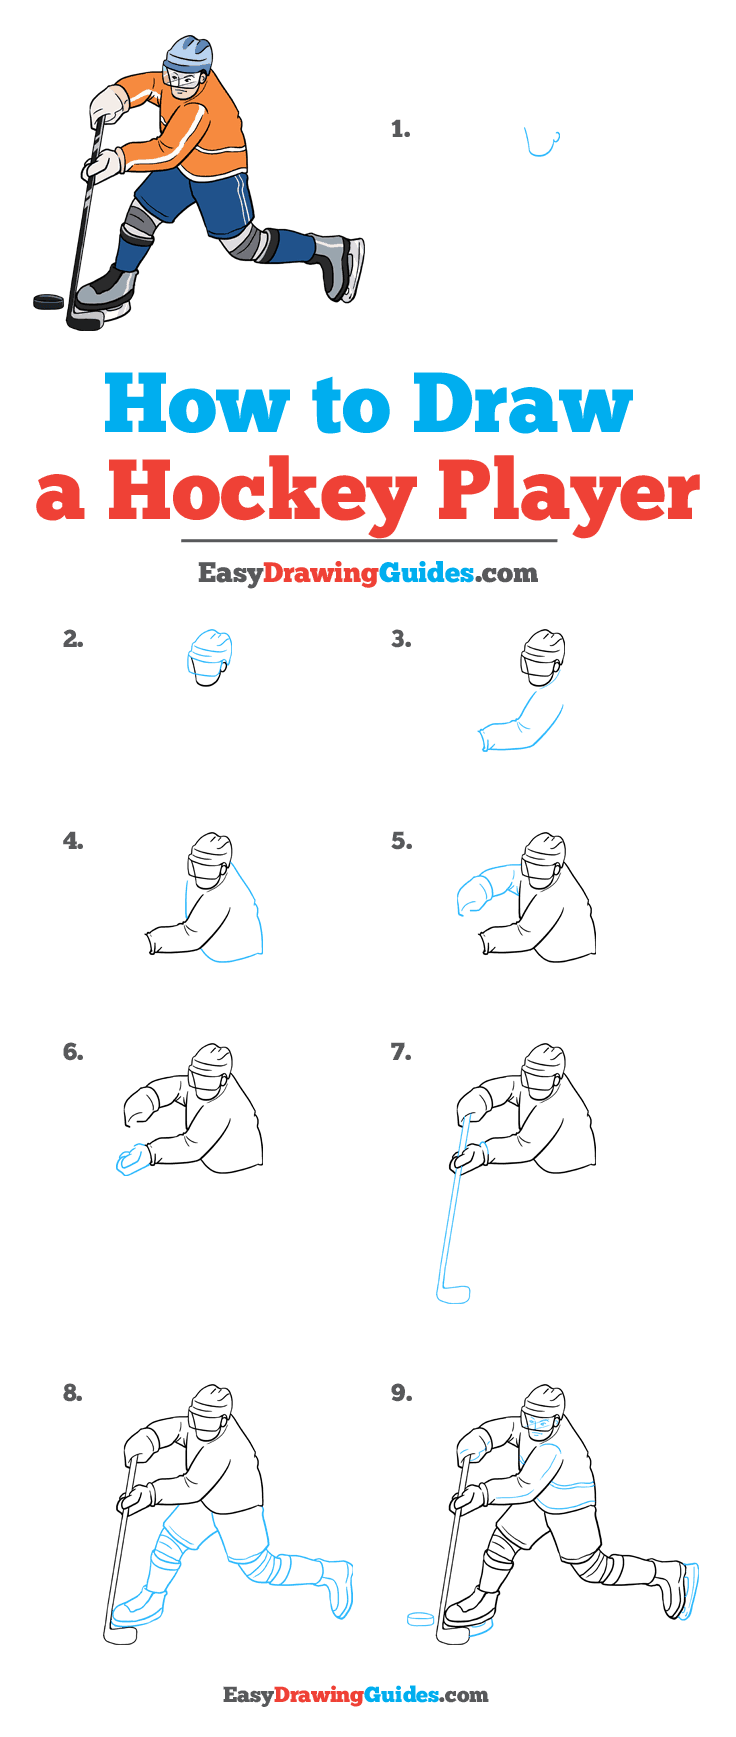 How to Draw Hockey Player